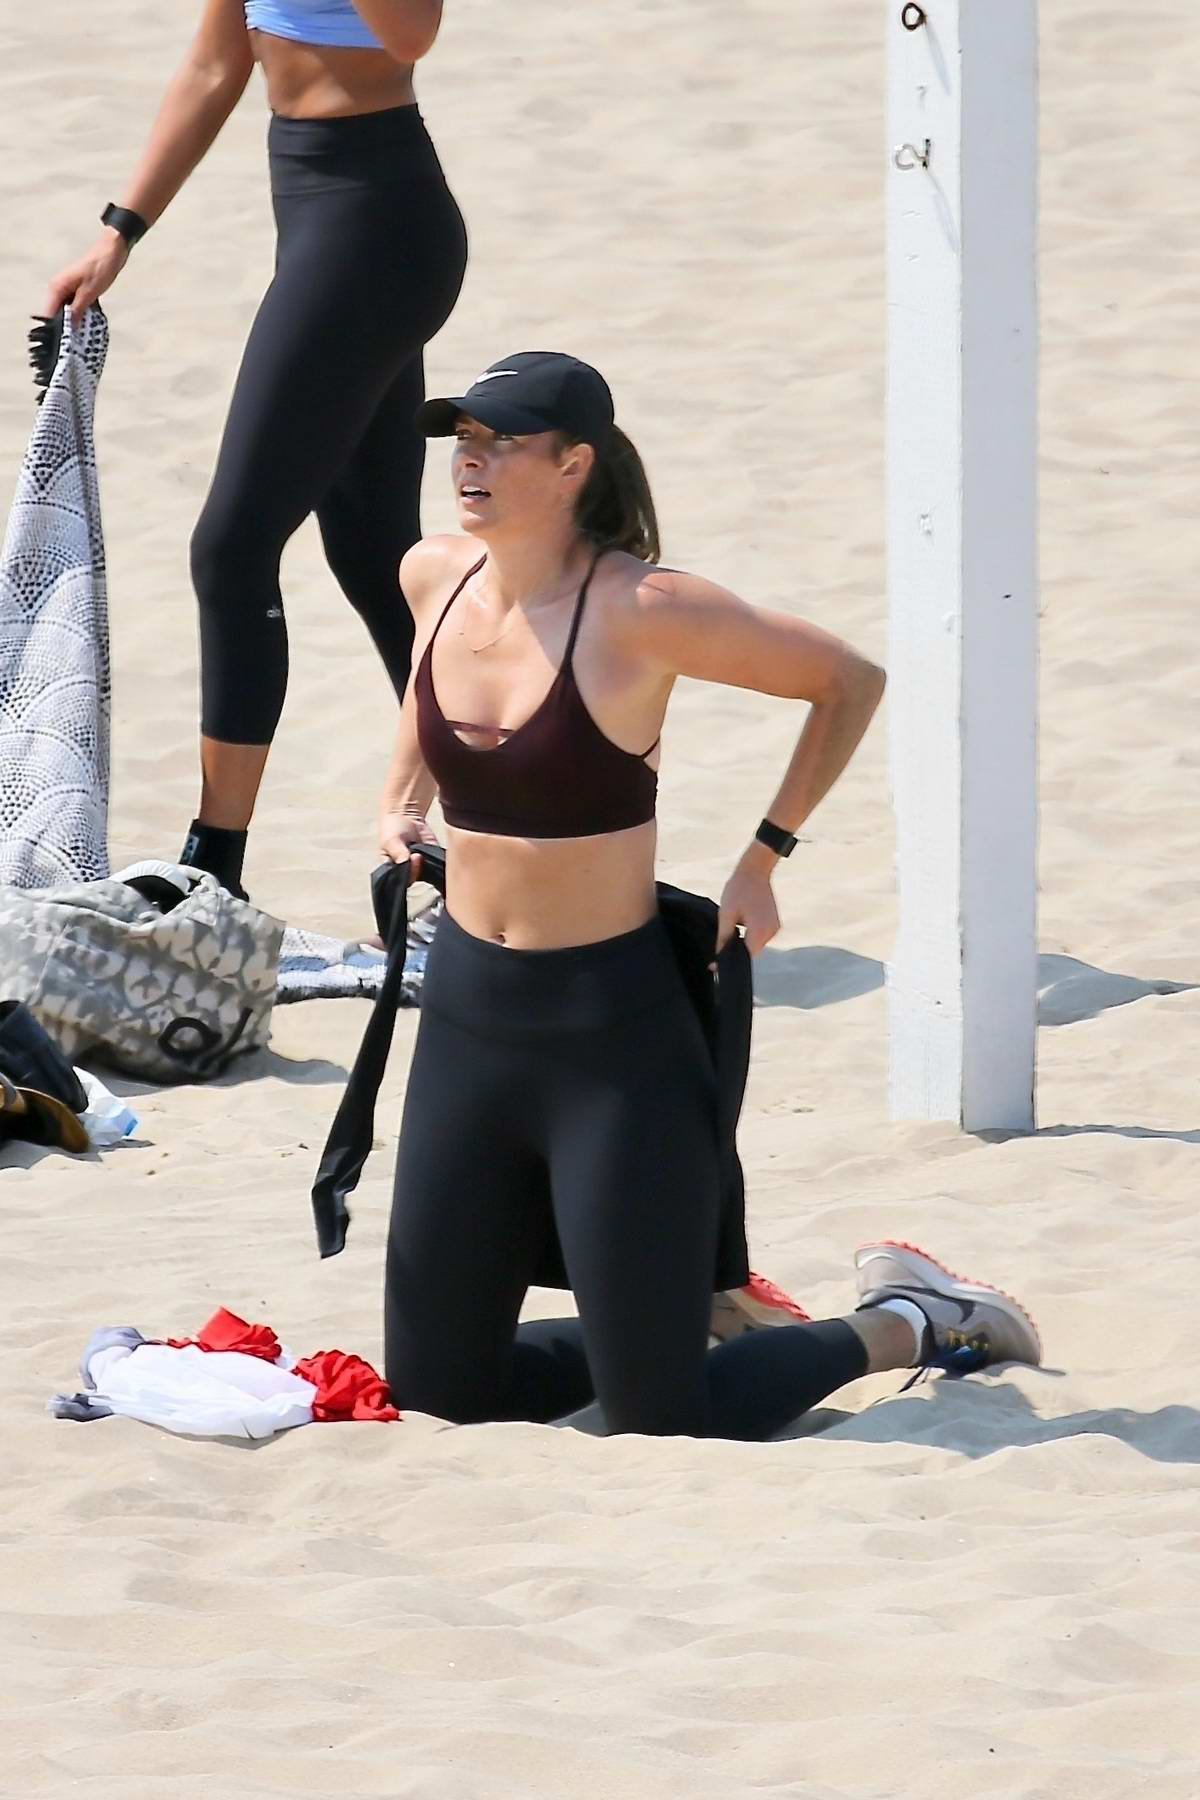 Maria Sharapova shows off her toned figure in sports bra and leggings during a beach workout session in Los Angeles